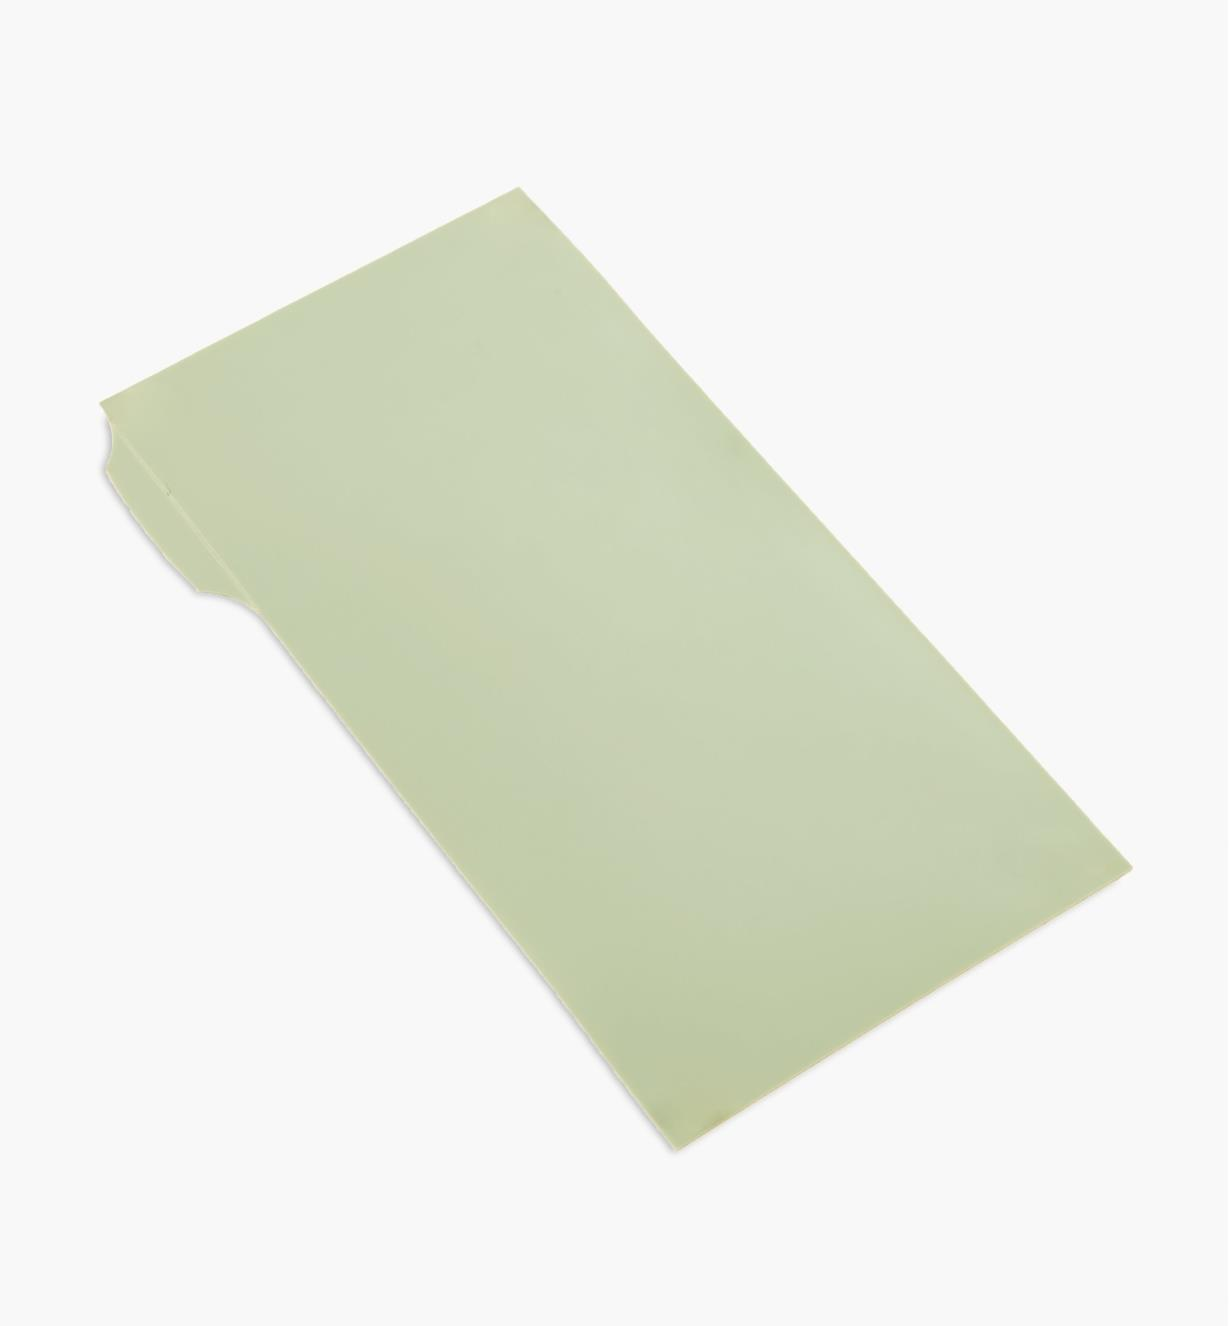 "54K9601 - 0.1µ PSA Diamond Film, 3"" x 6"" (green)"